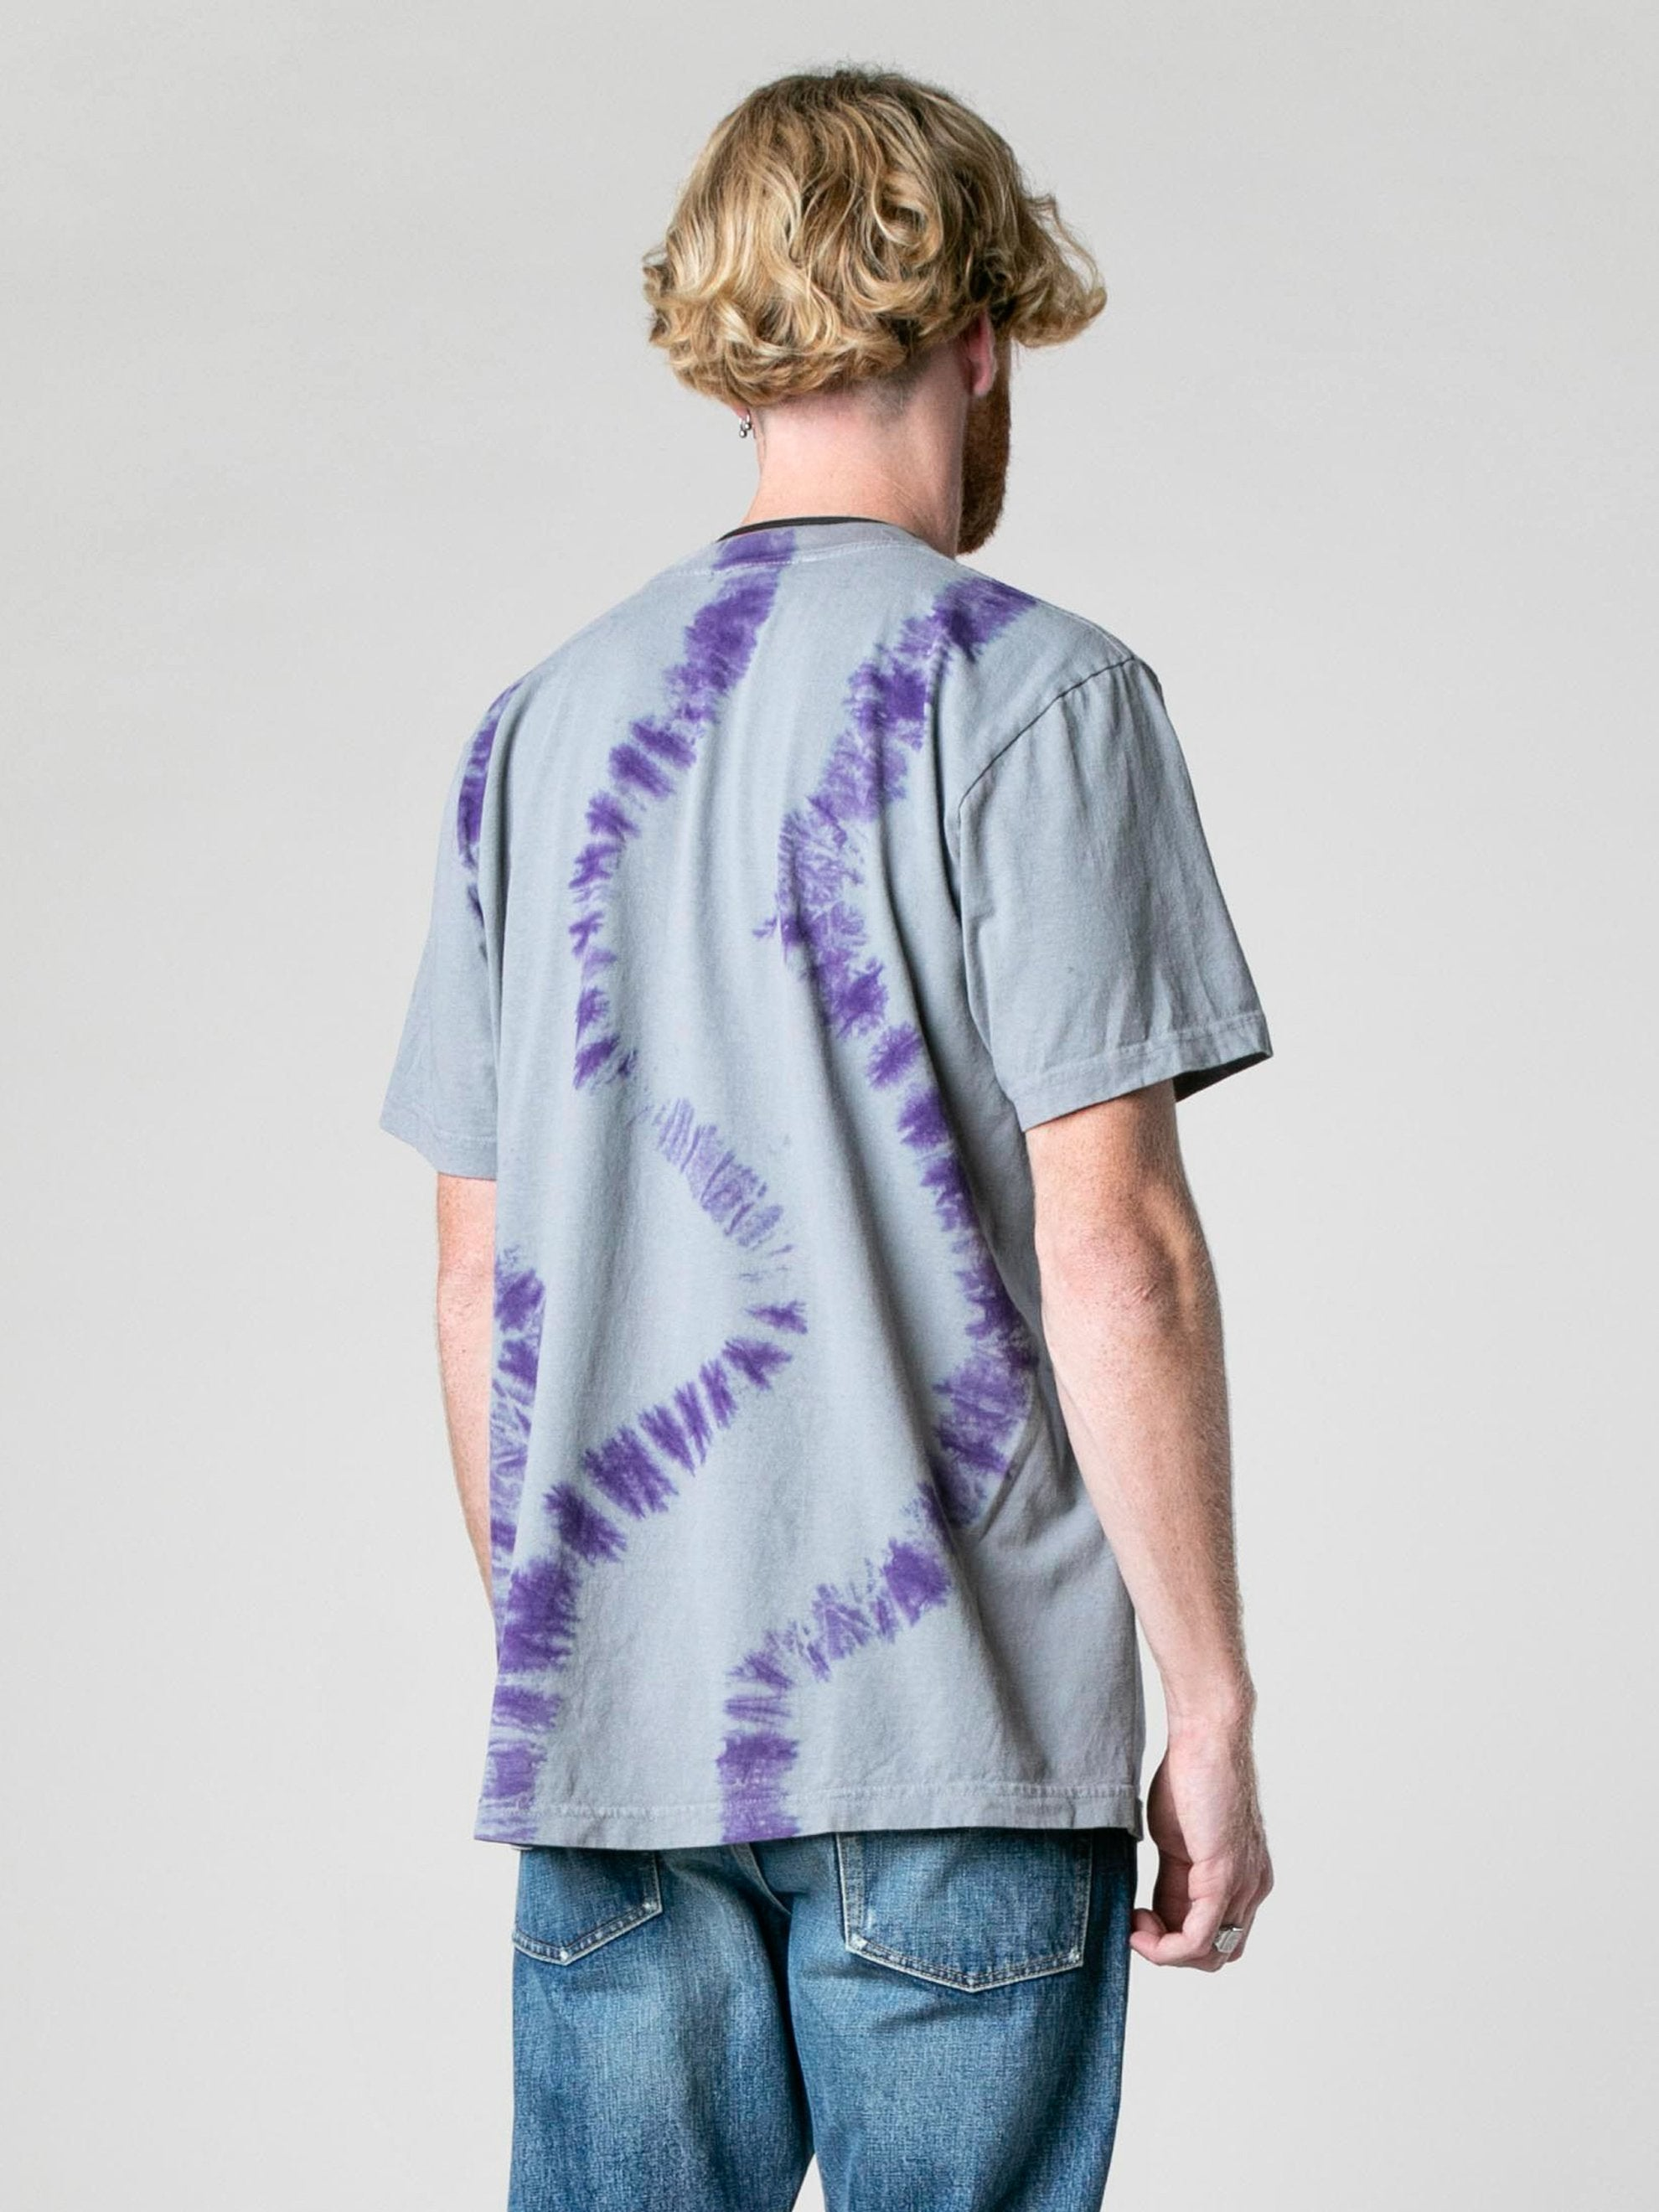 Grey Mary With The Watches Tye-Dye T-Shirt 5